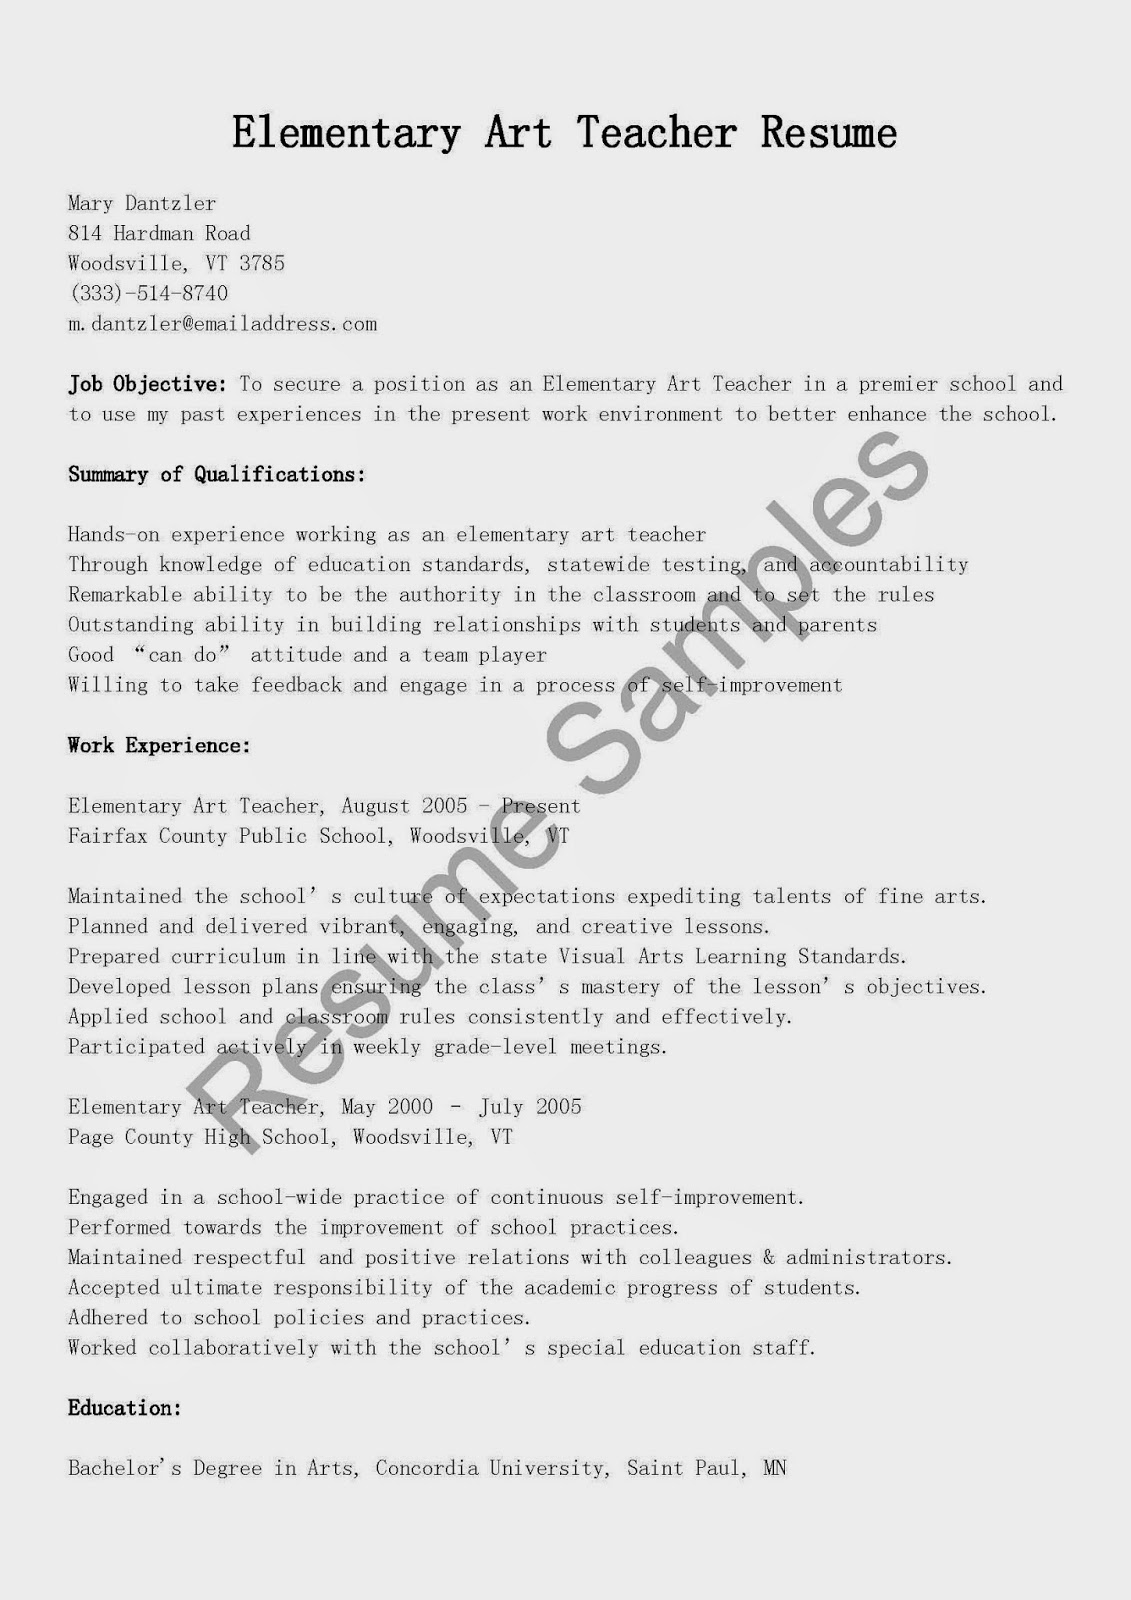 Resume For Elementary Teacher Resume Samples Elementary Art Teacher Resume Sample